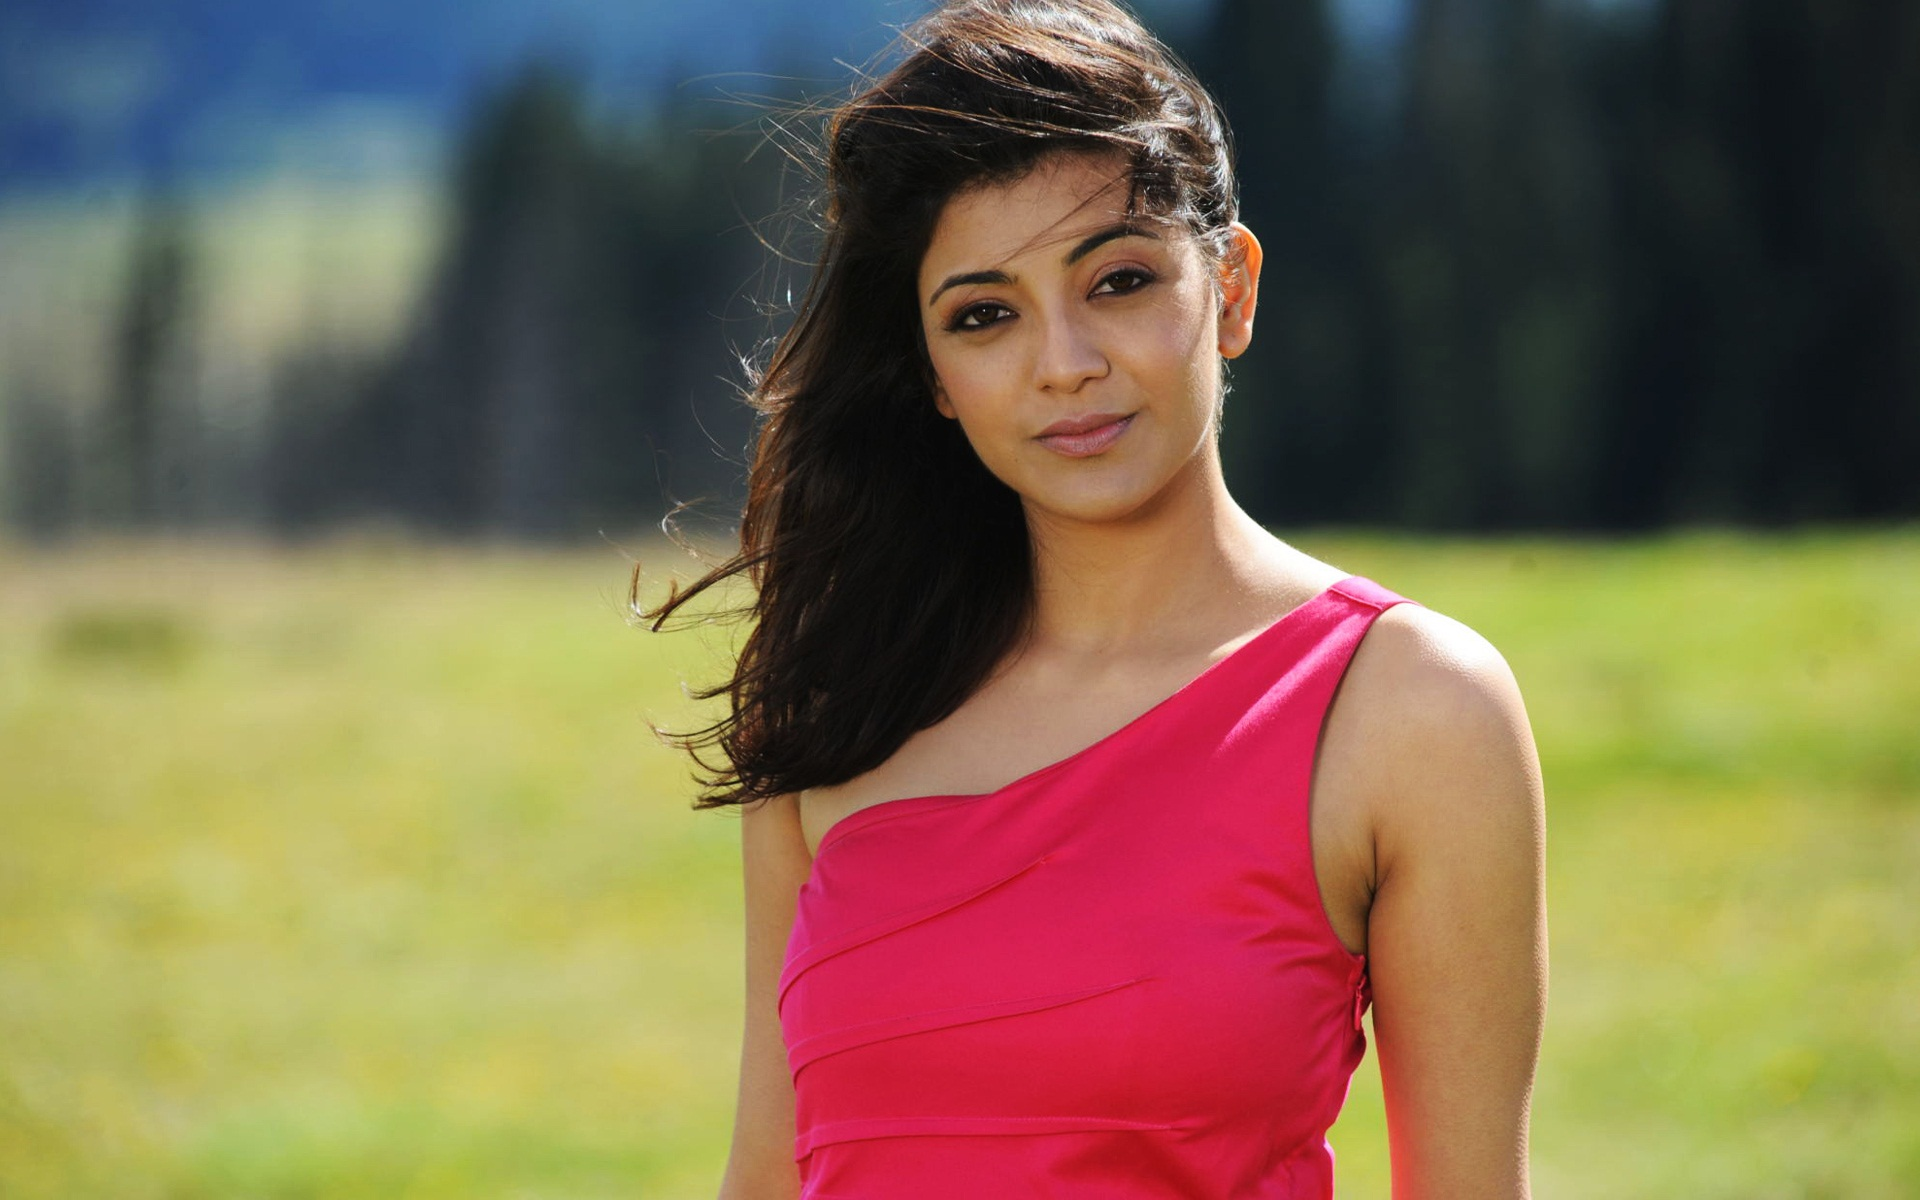 Wallpaper download kajal agarwal - Best Kajal Agarwal Wallpapers Free Download